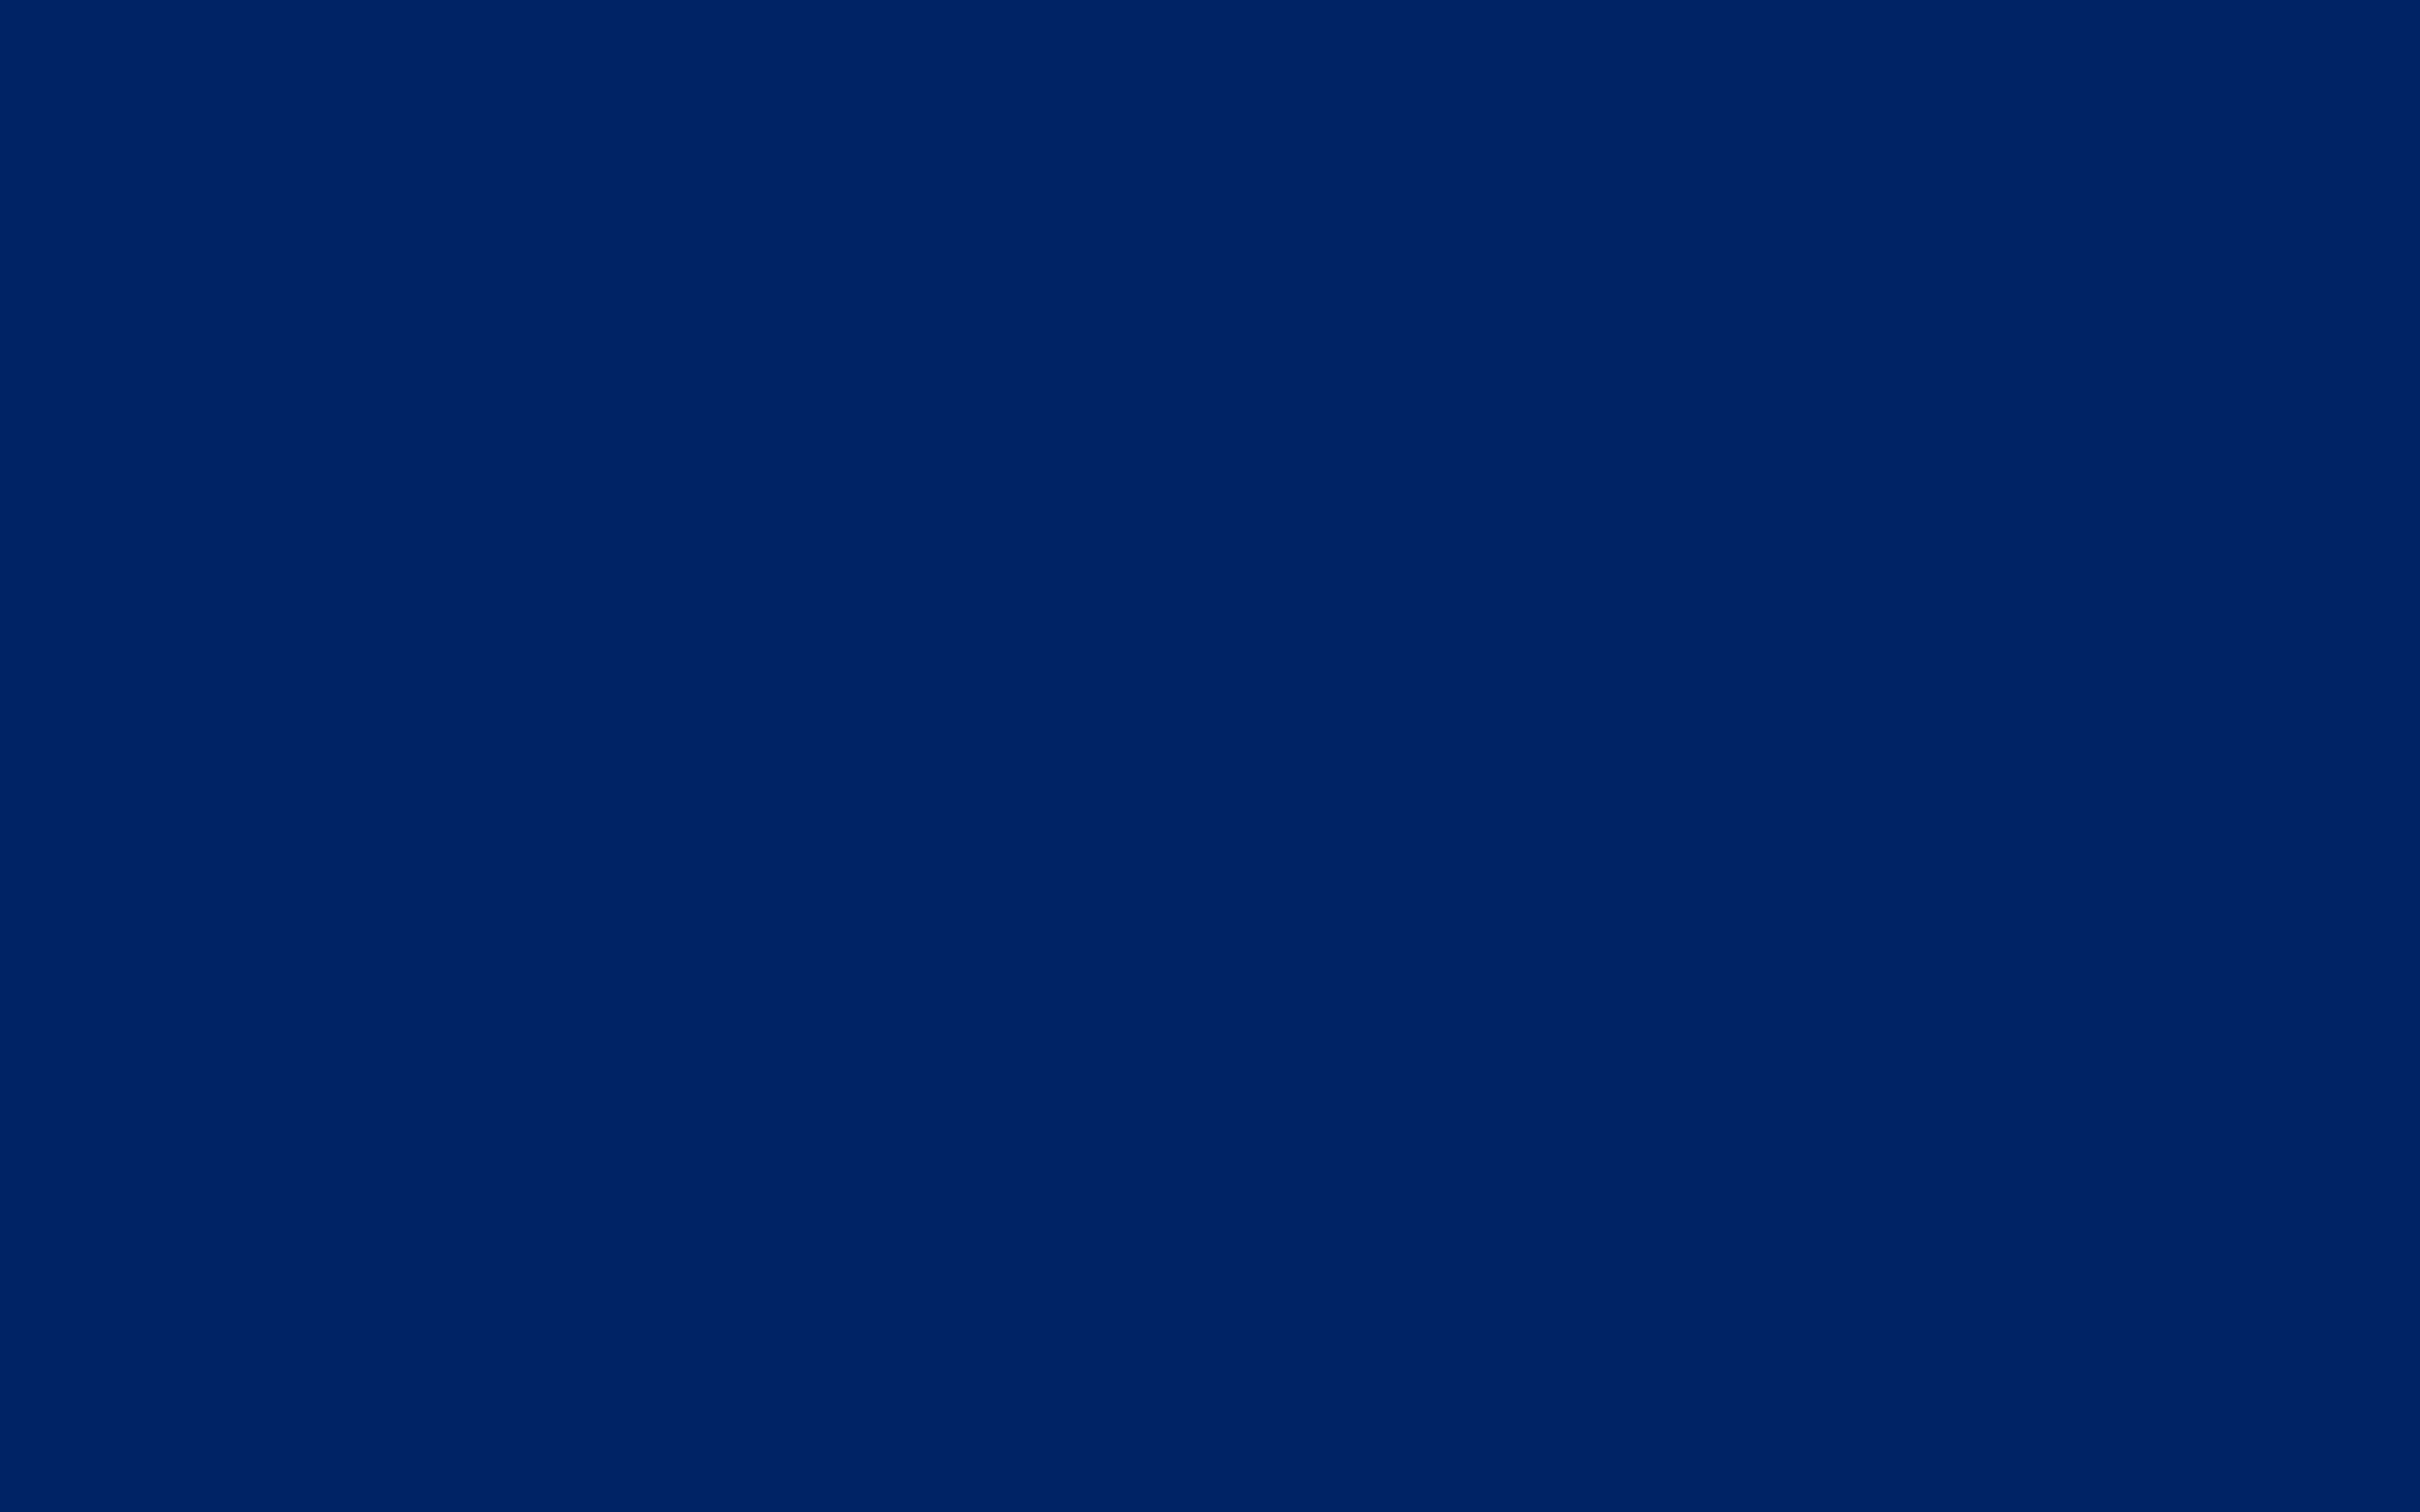 2560x1600 Royal Blue Traditional Solid Color Background